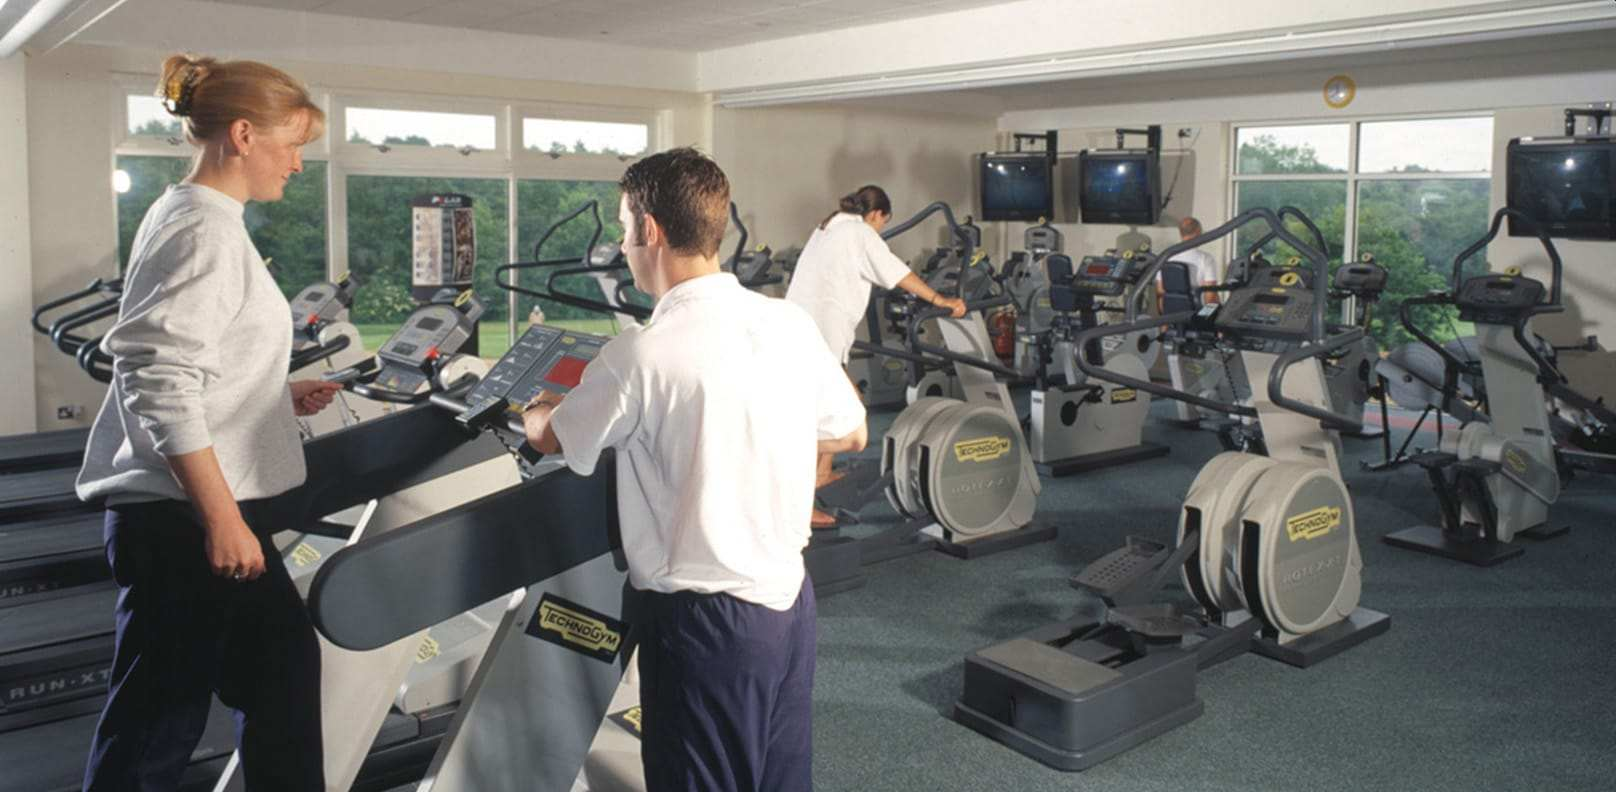 Original Peake Fitness Technogym 1999